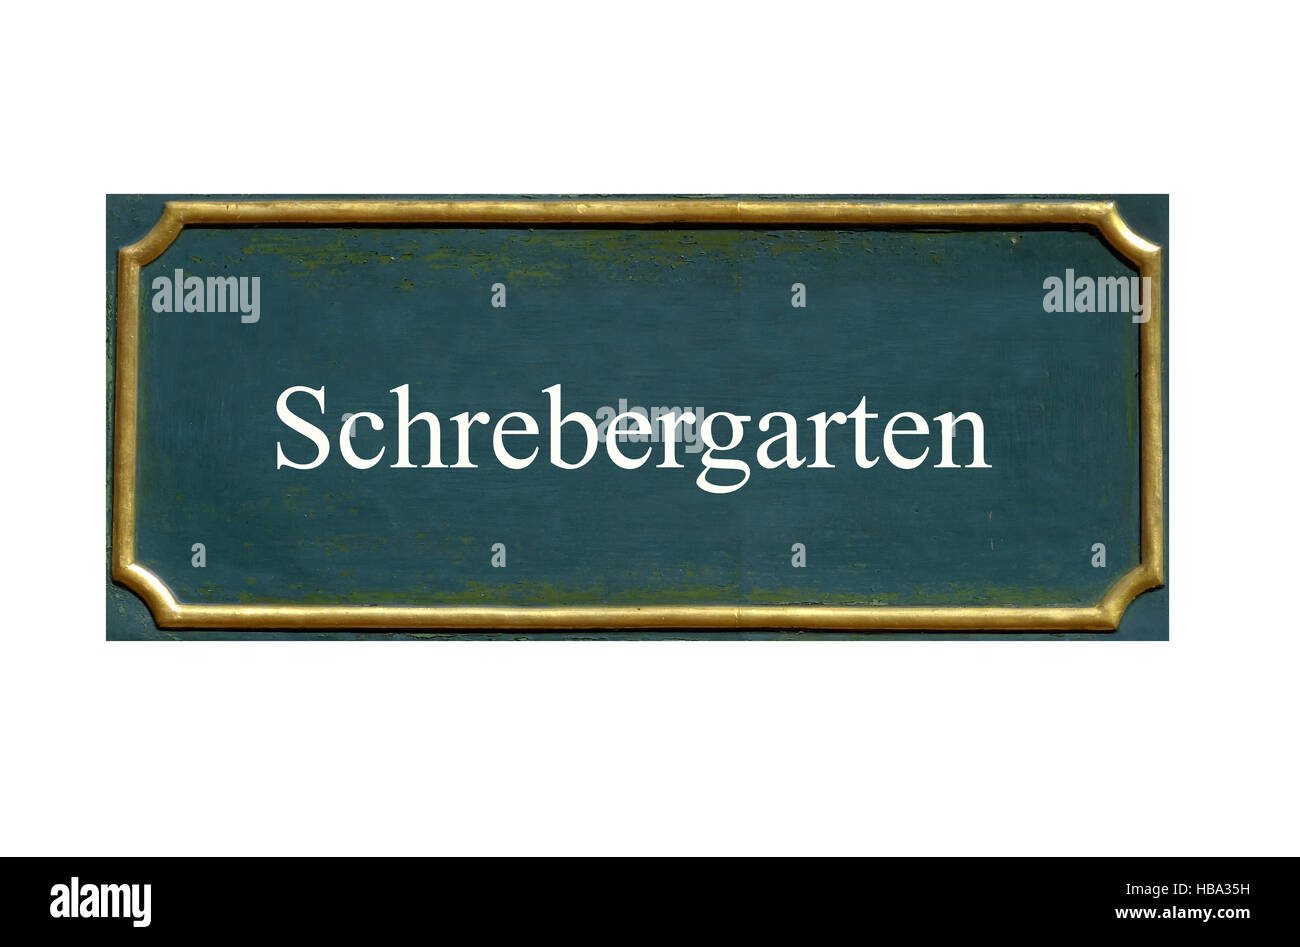 shield  schrebergarten - Stock Image